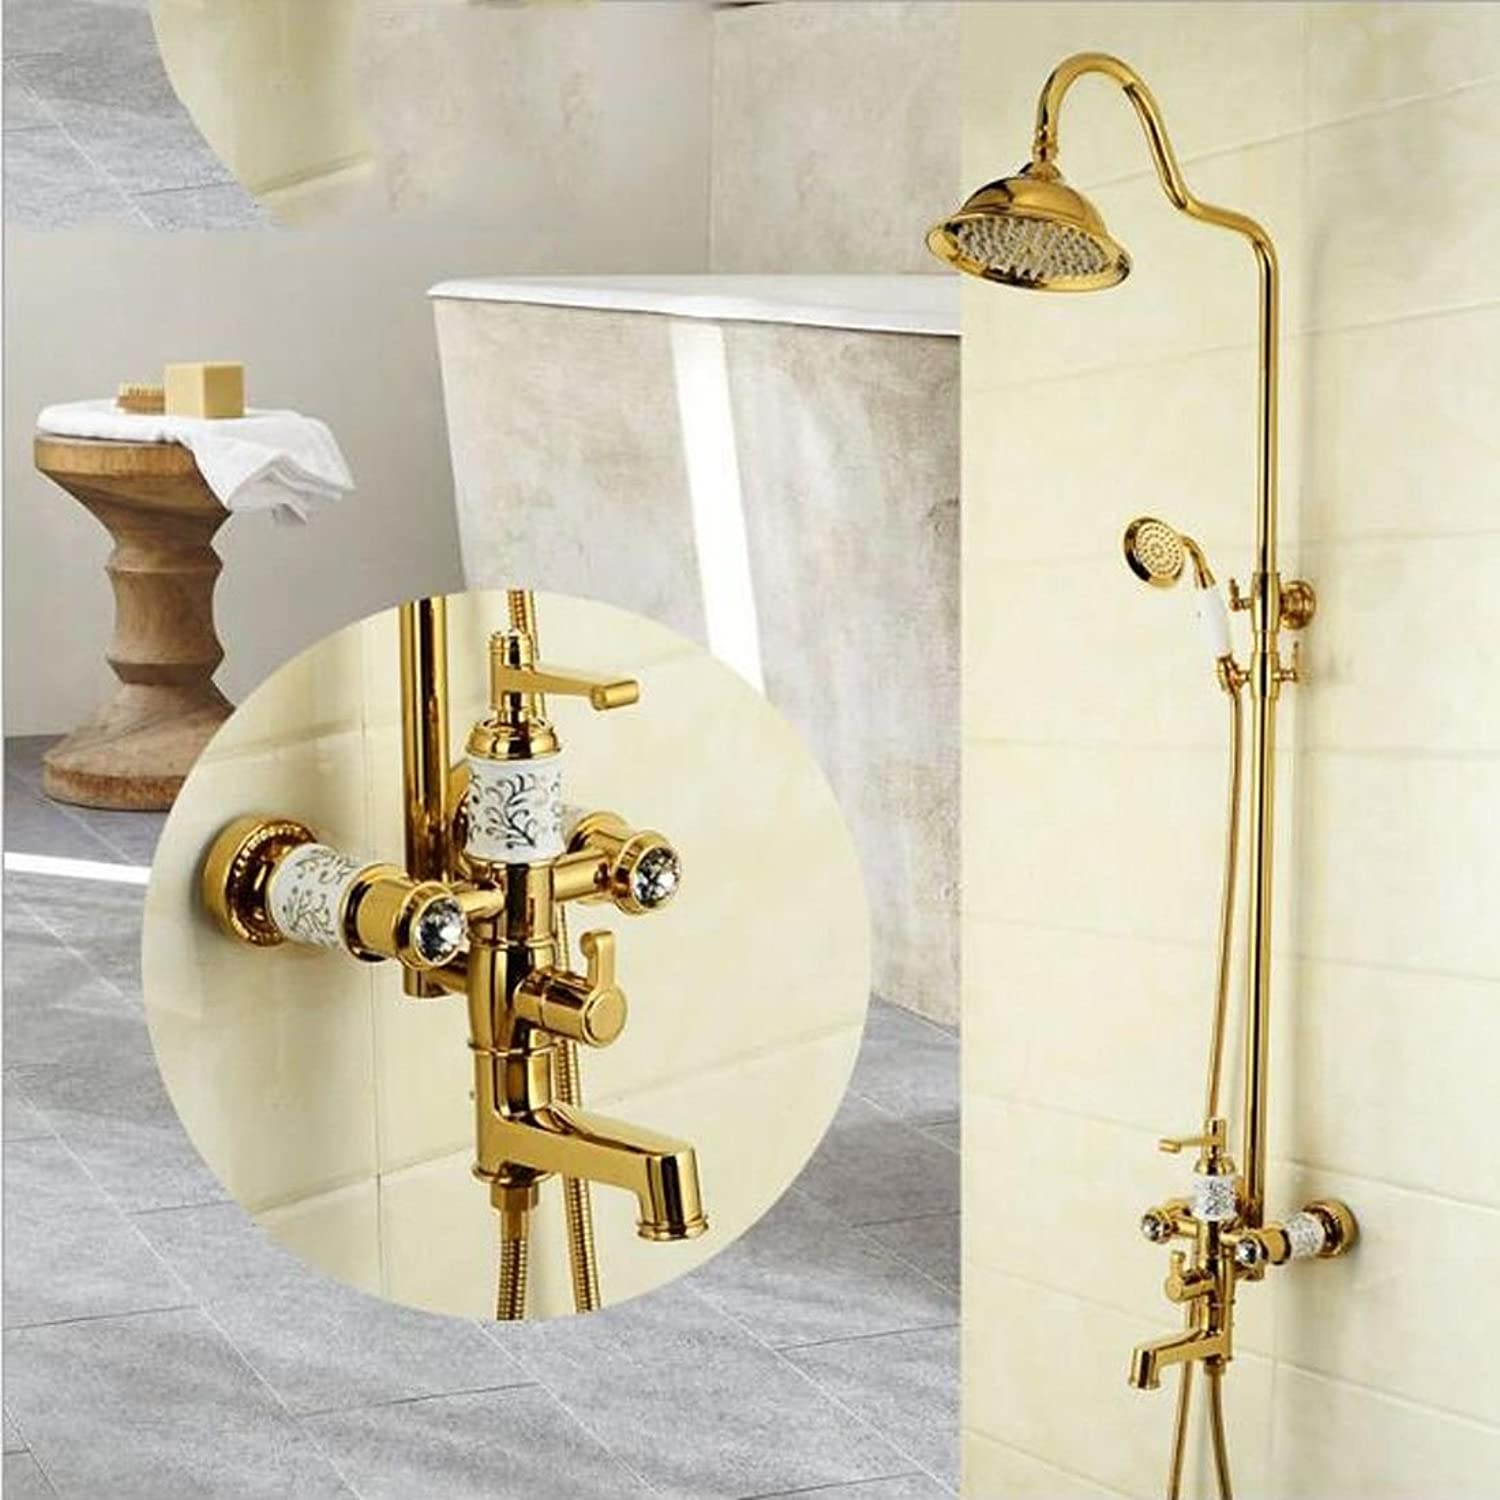 Kitchen Or Bathroom Sink Mixer Tap The Quartet Managed Water Tap Full Copper Sink Cold-Hot-Cold-Water Washing Dishes In A Bathtub Water Tap Brushed Copper Plating A Single Cold Big Bend +60Cm Water Inlet Pipe